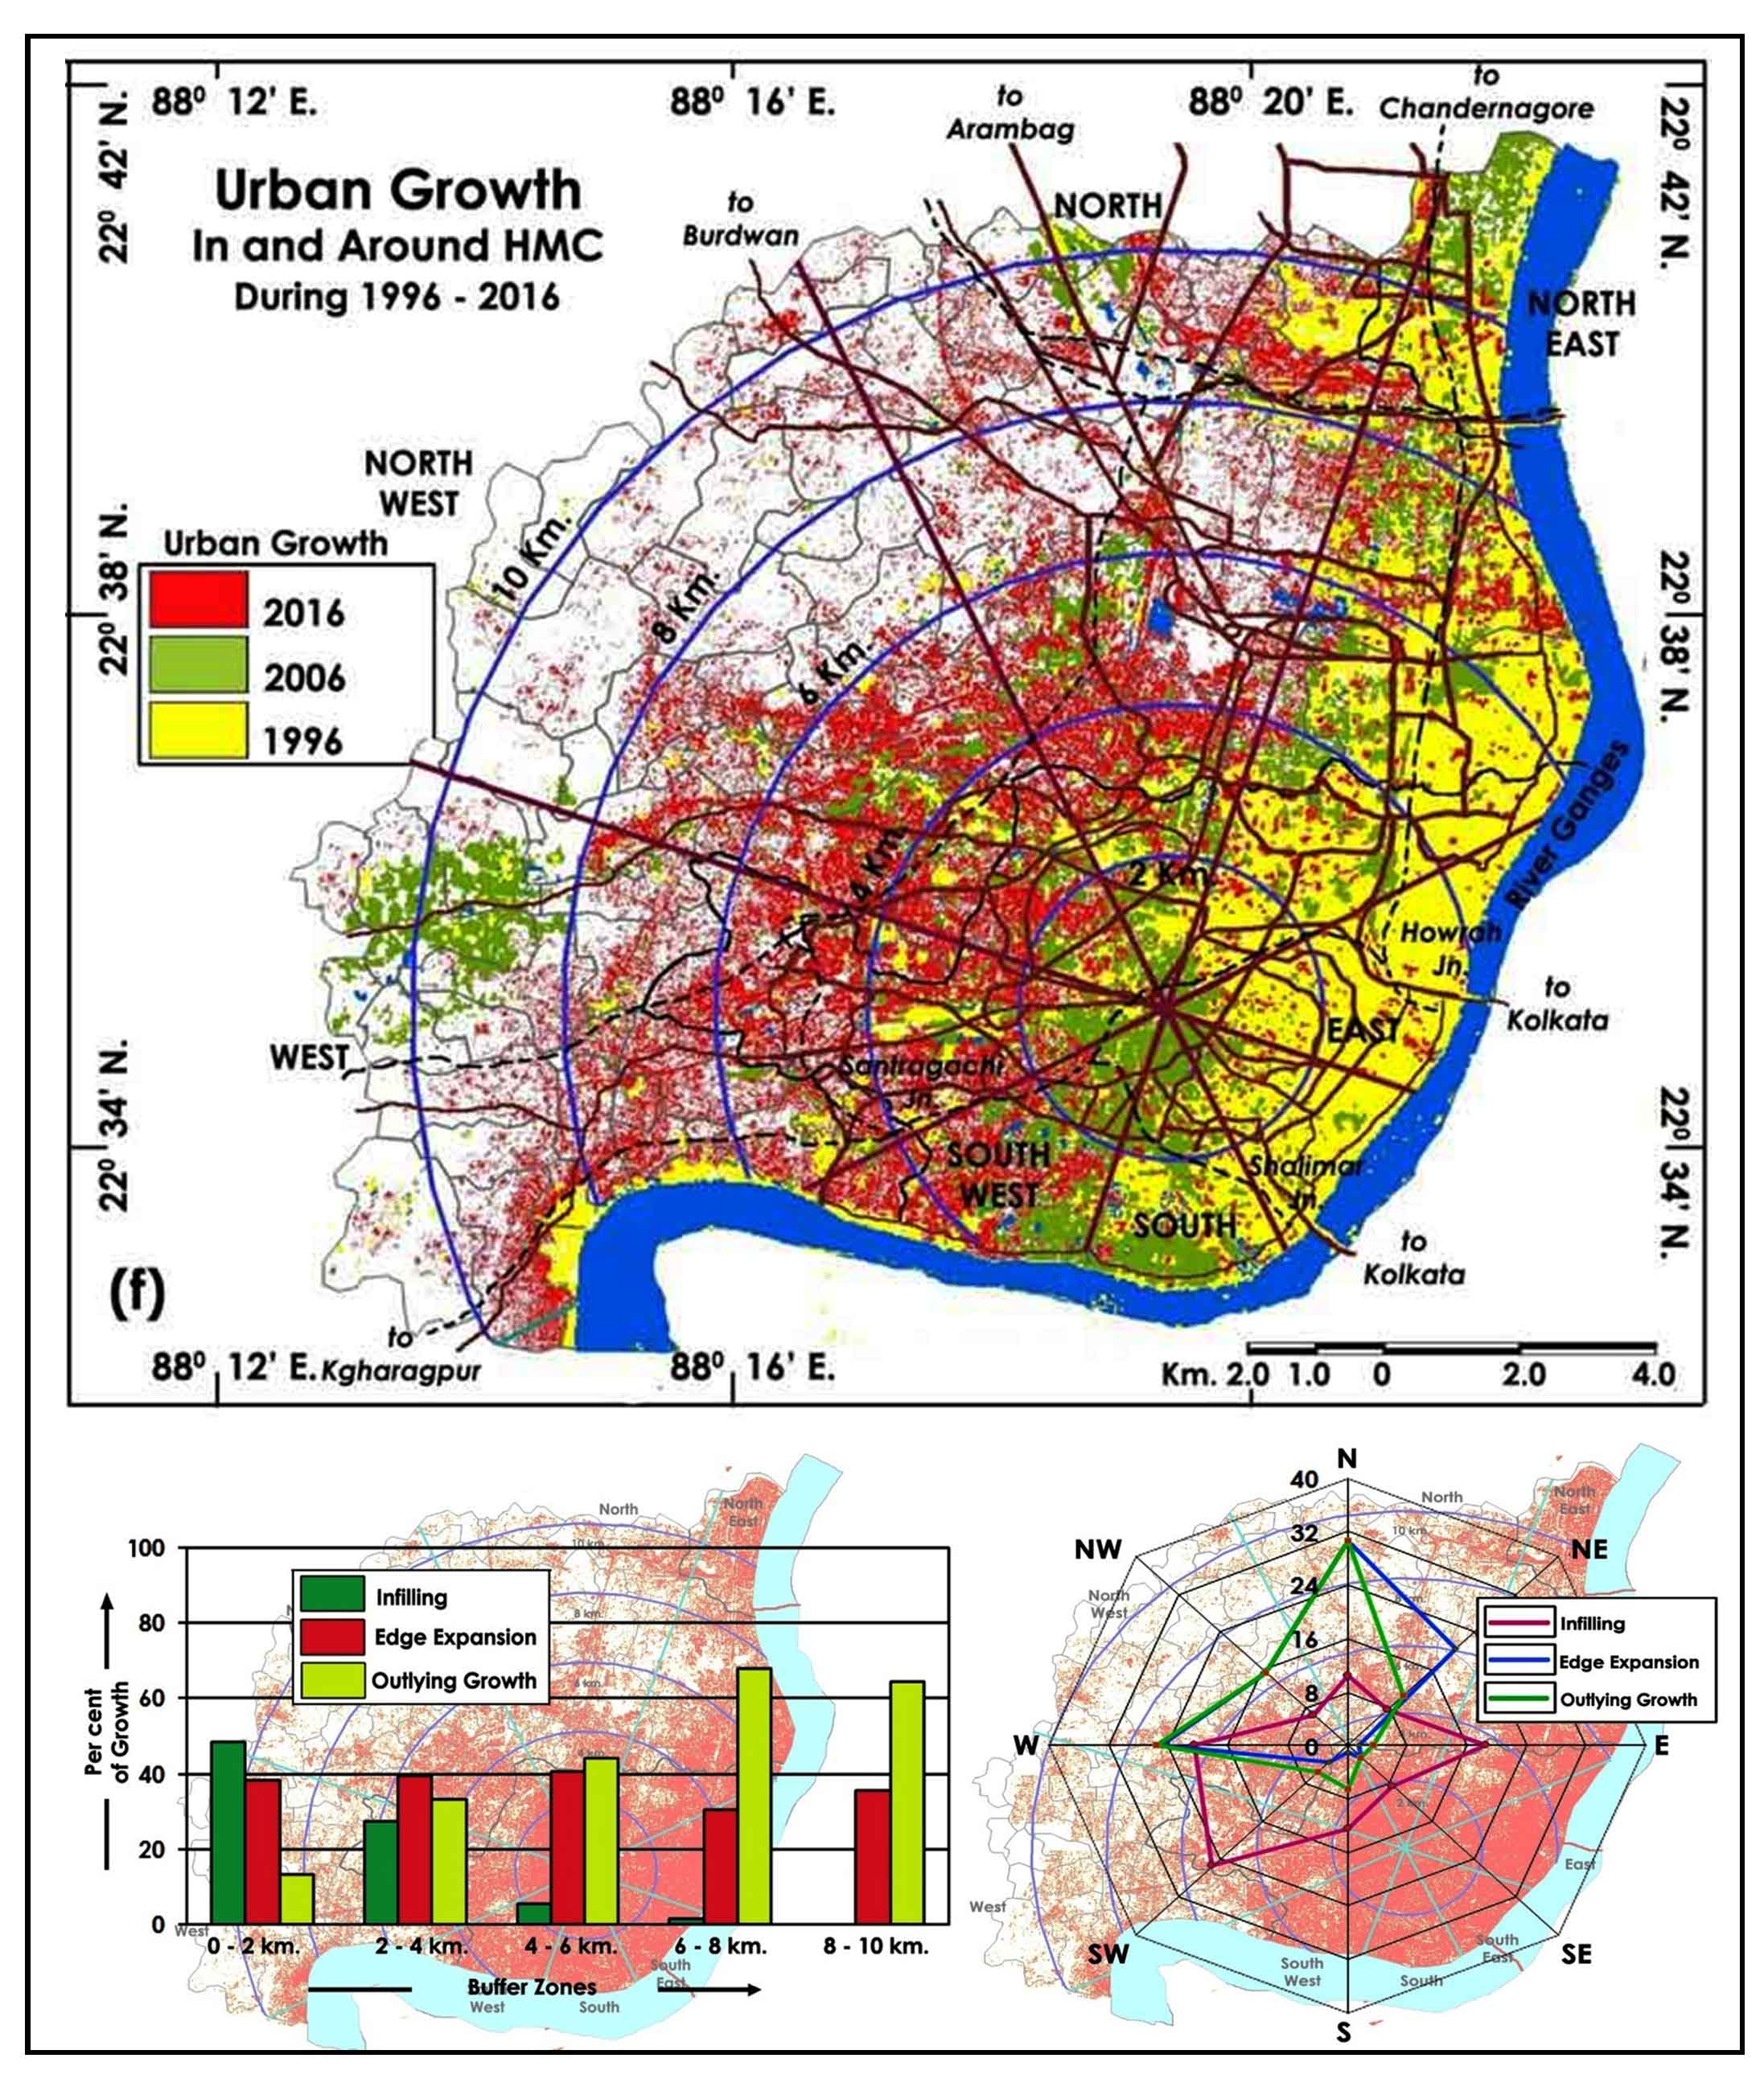 Monitoring and Measuring the Urban Forms Using Spatial Metrics of Howrah City, India